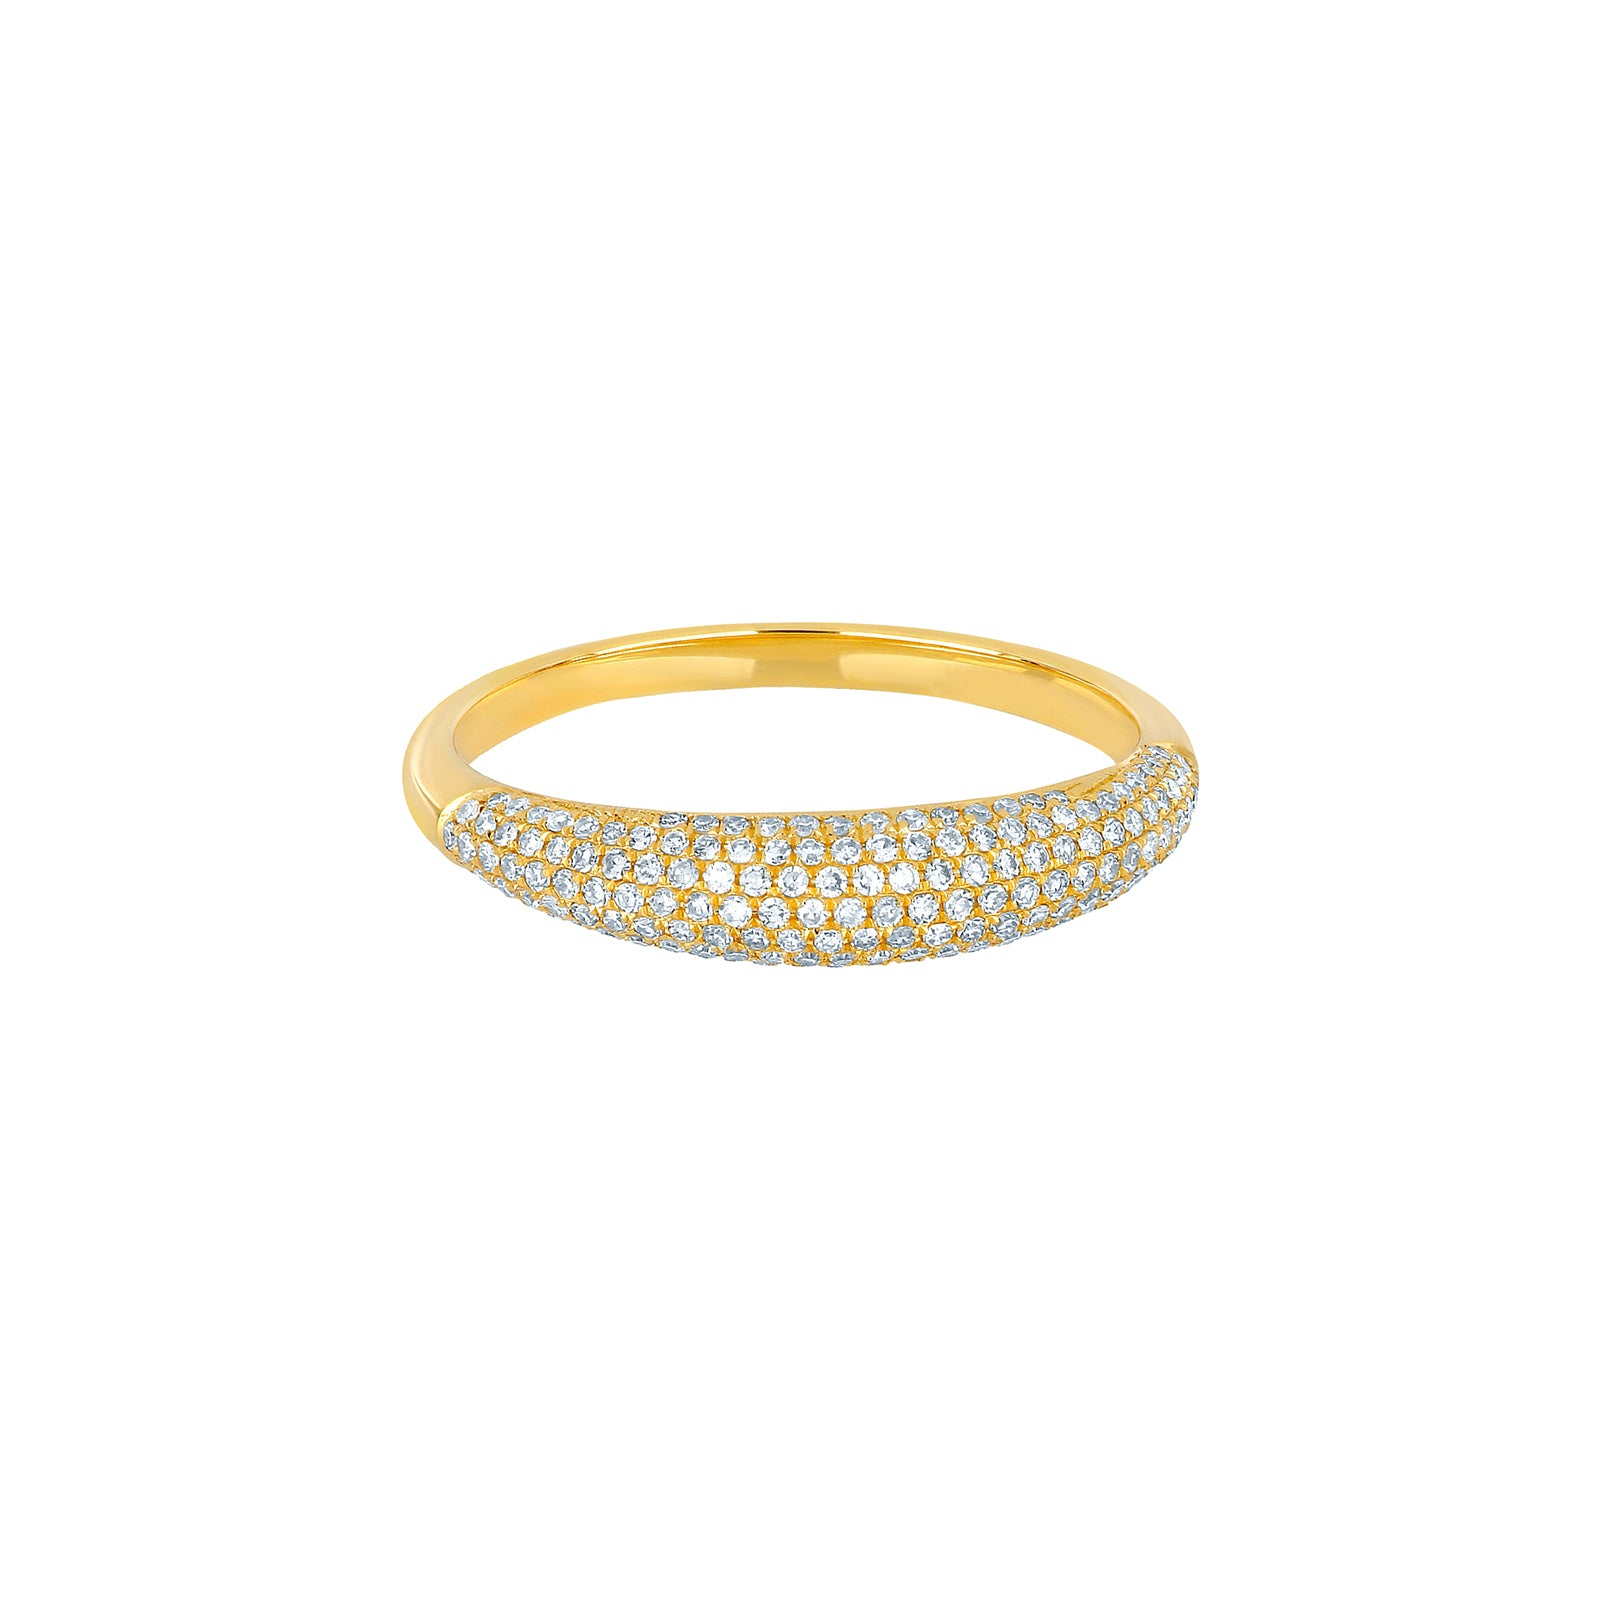 EF Collection Dome Diamond Ring - Yellow Gold - Rings - Broken English Jewelry